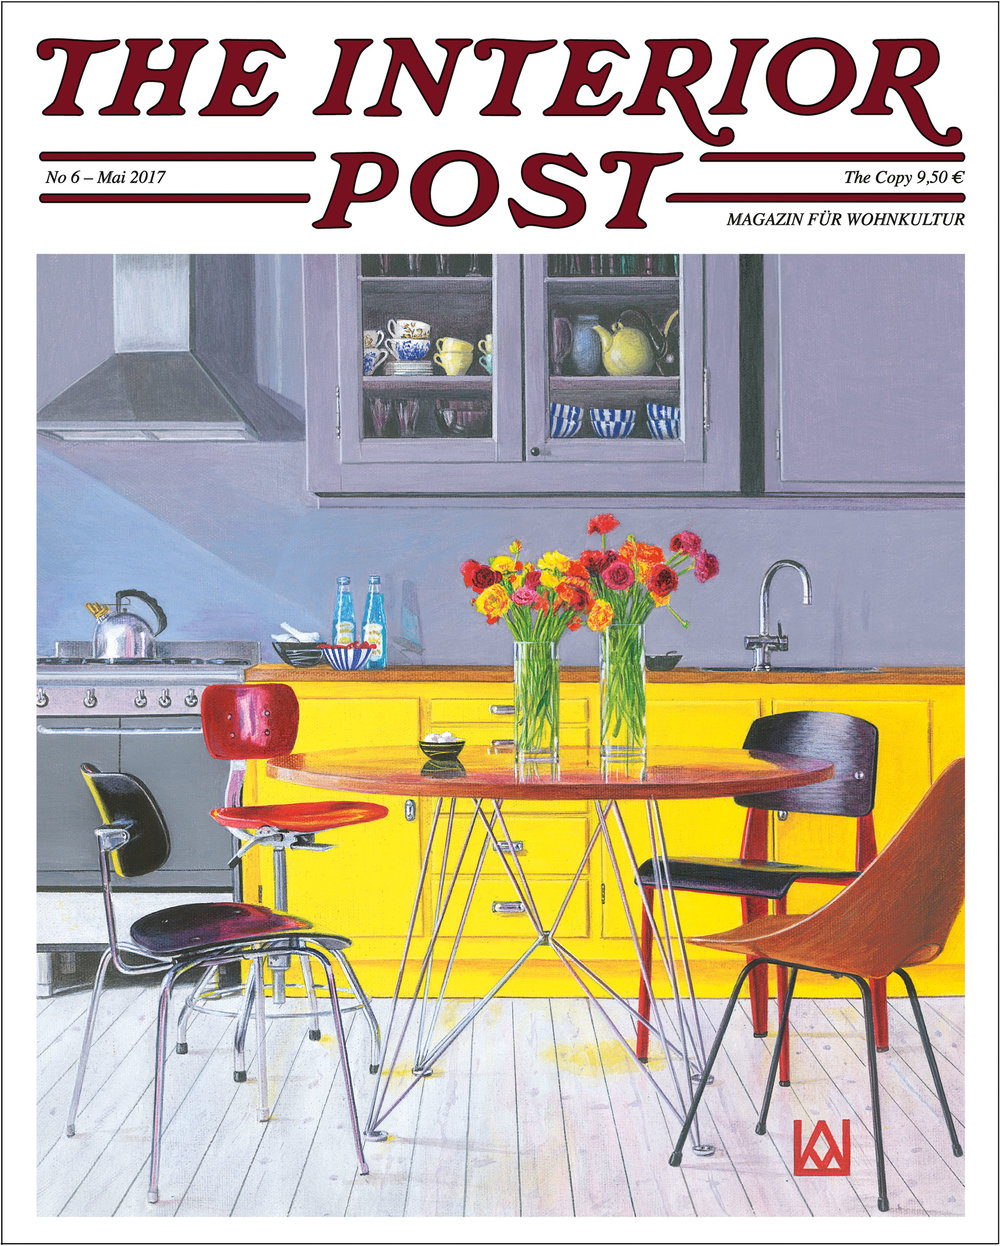 THE INTERIOR POST MAGAZINE, May 2017.